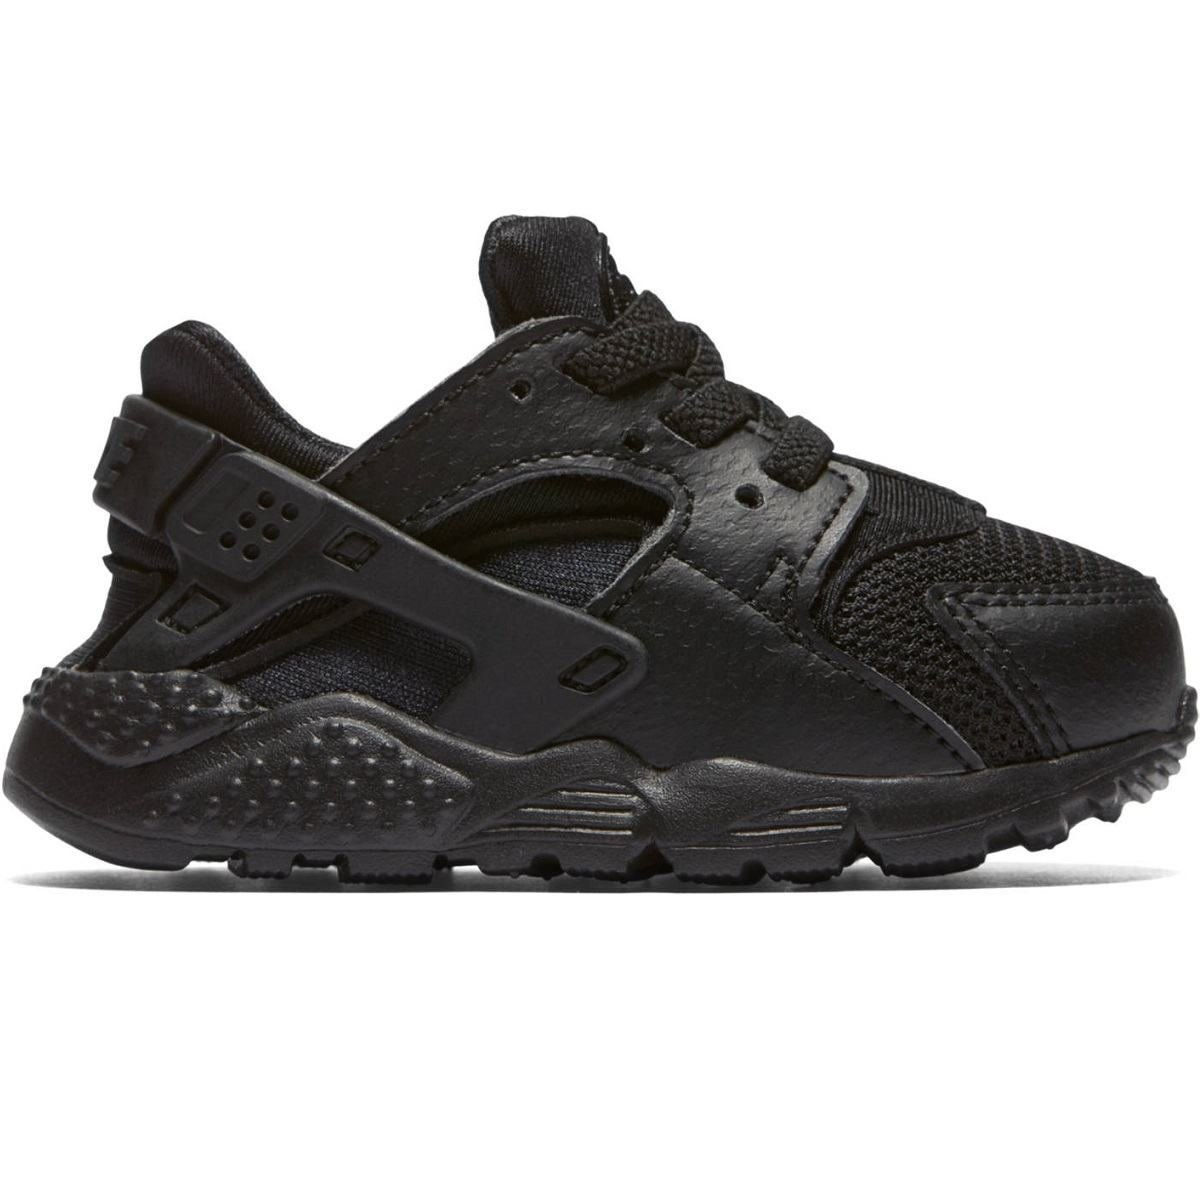 704950-016 INFANTS AND TODDLER HUARACHE RUN (TD) NIKE BLACK